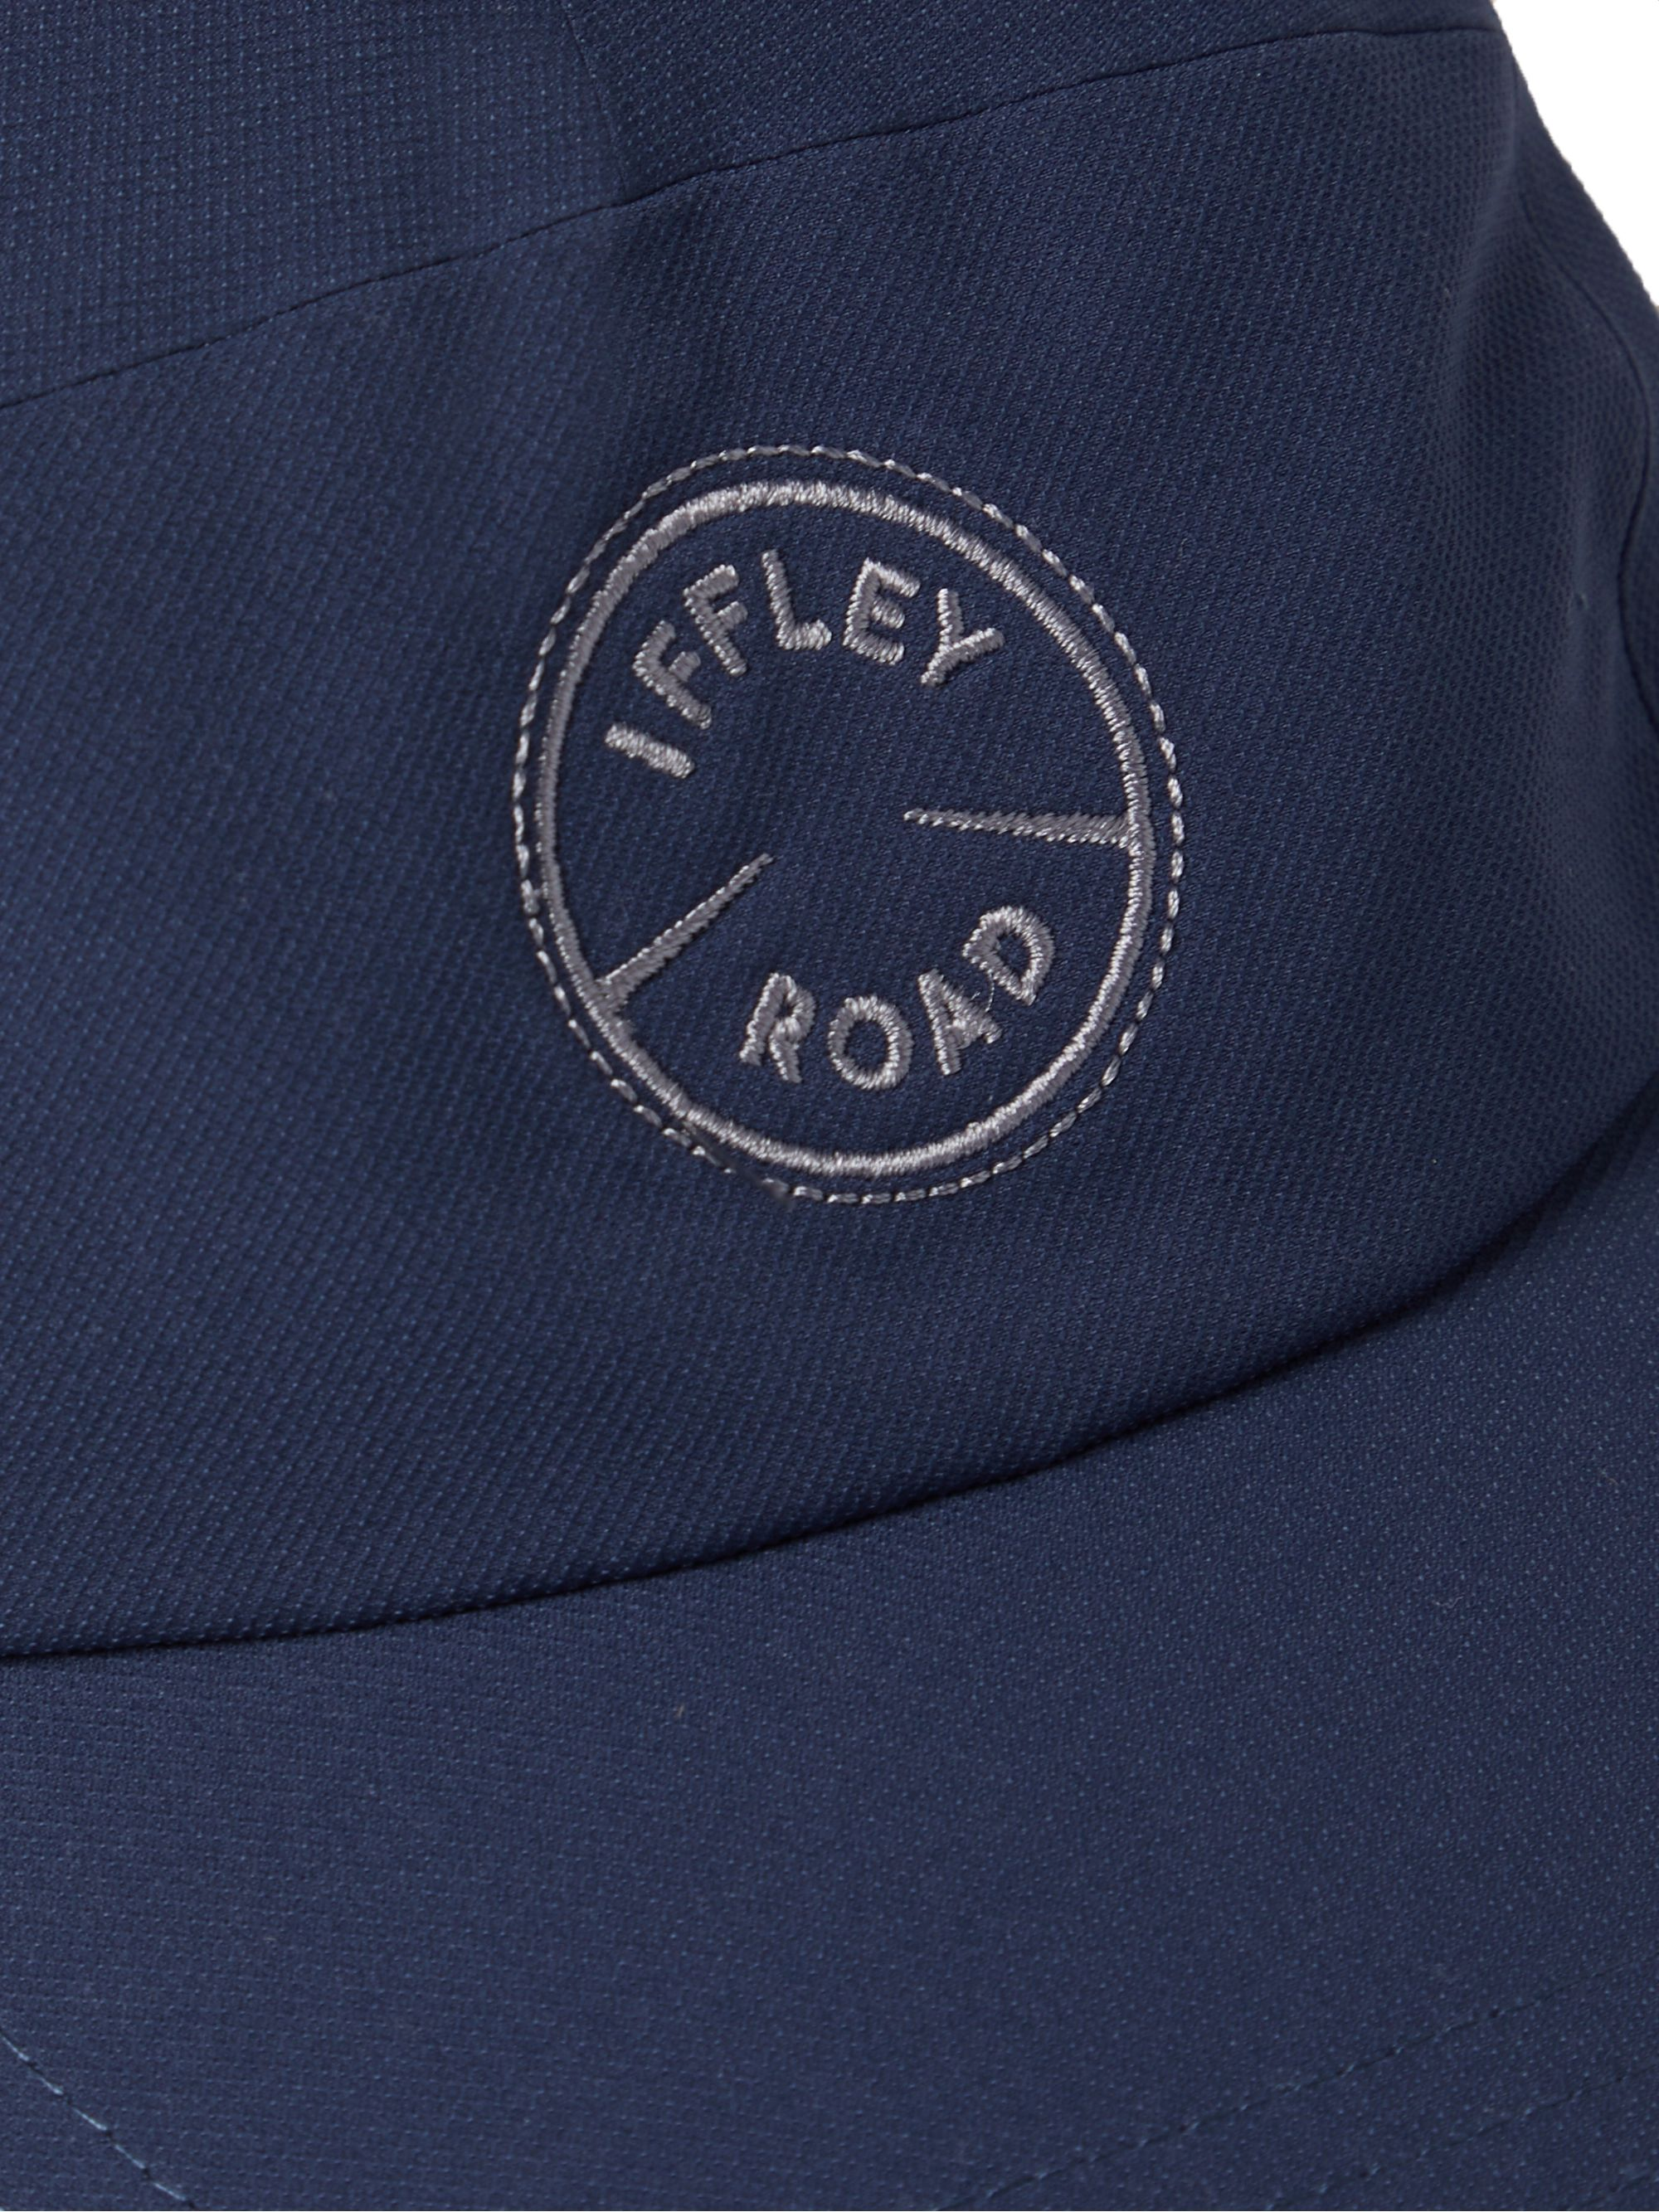 Iffley Road Putney Logo-Embroidered Perforated Shell Running Cap